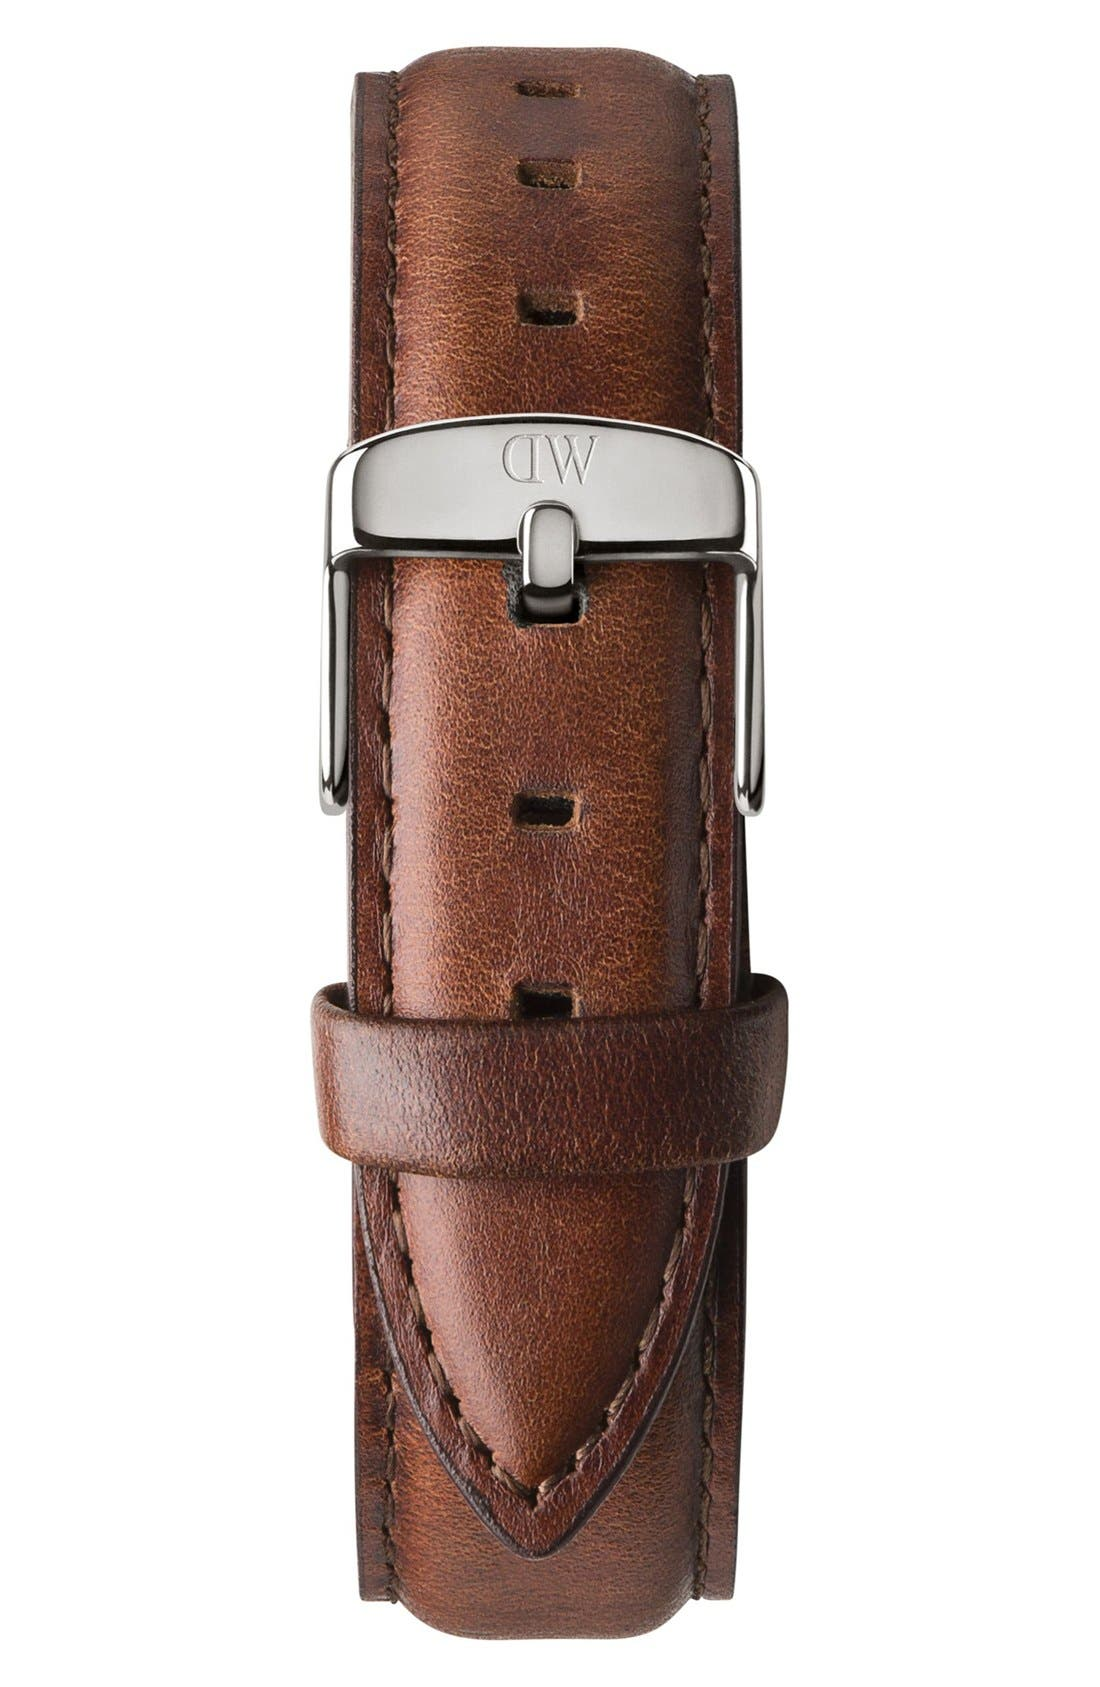 'Classic St. Mawes' 18mm Leather Watch Strap